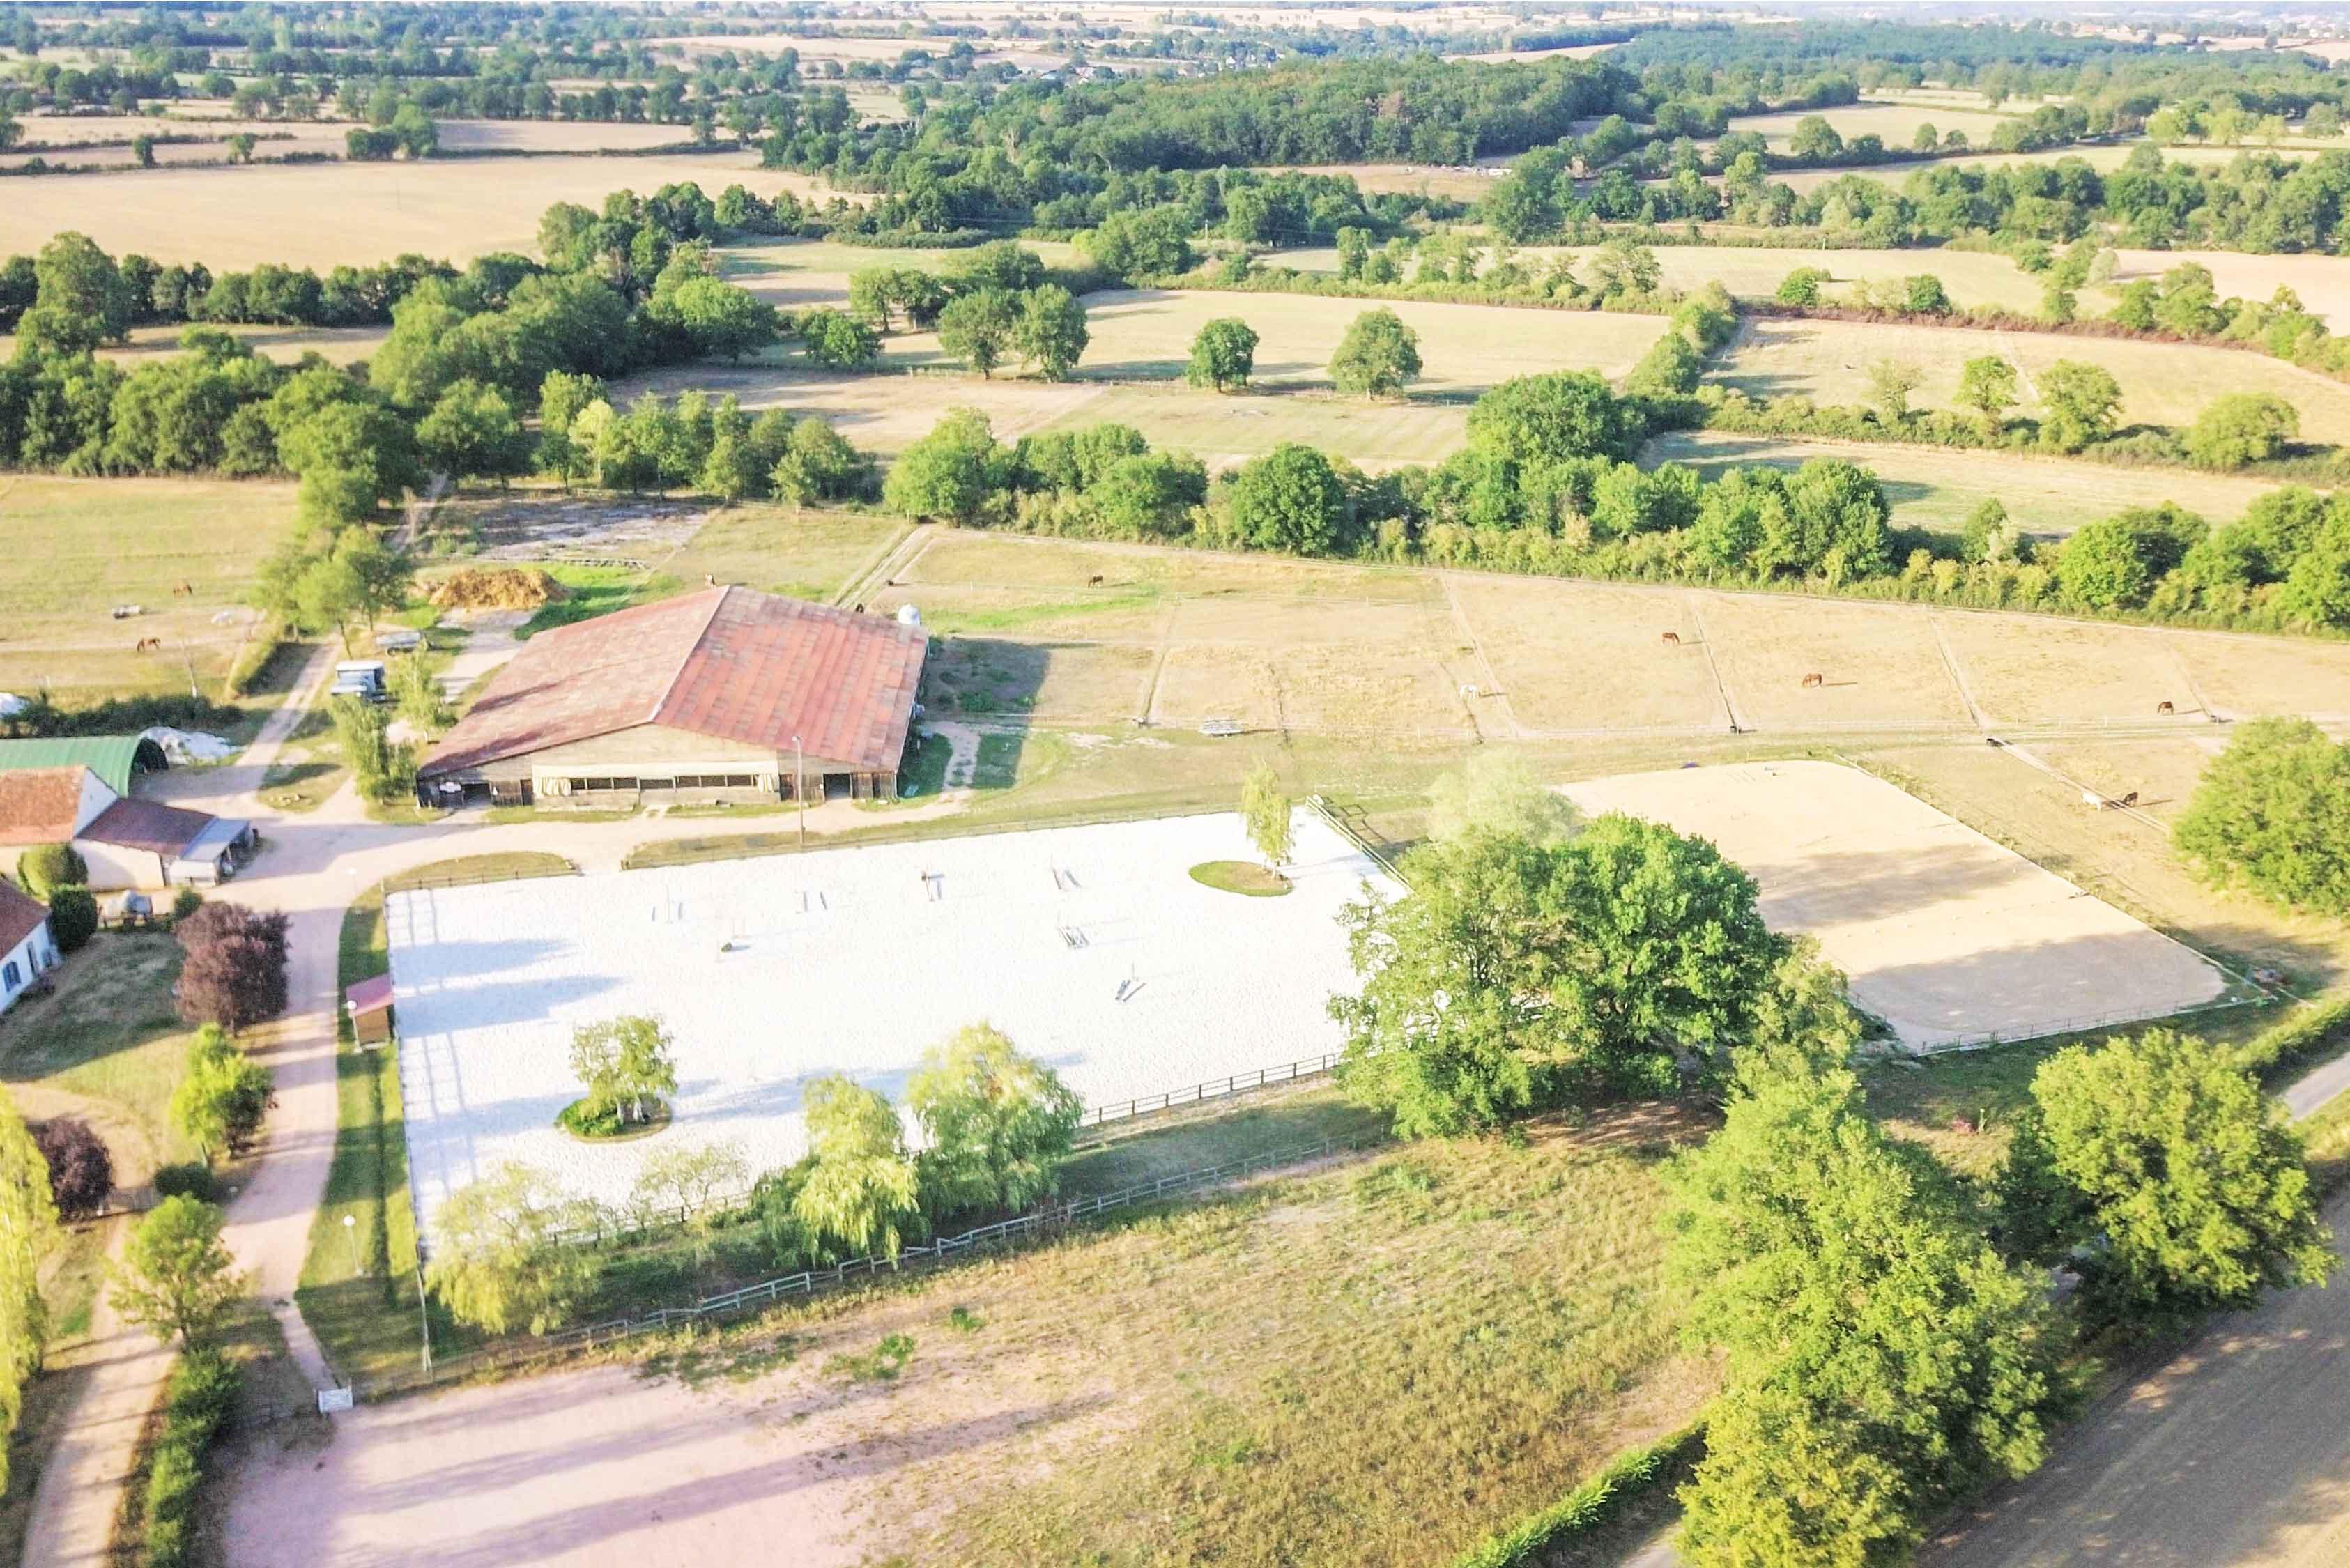 cours-drone-bassedef